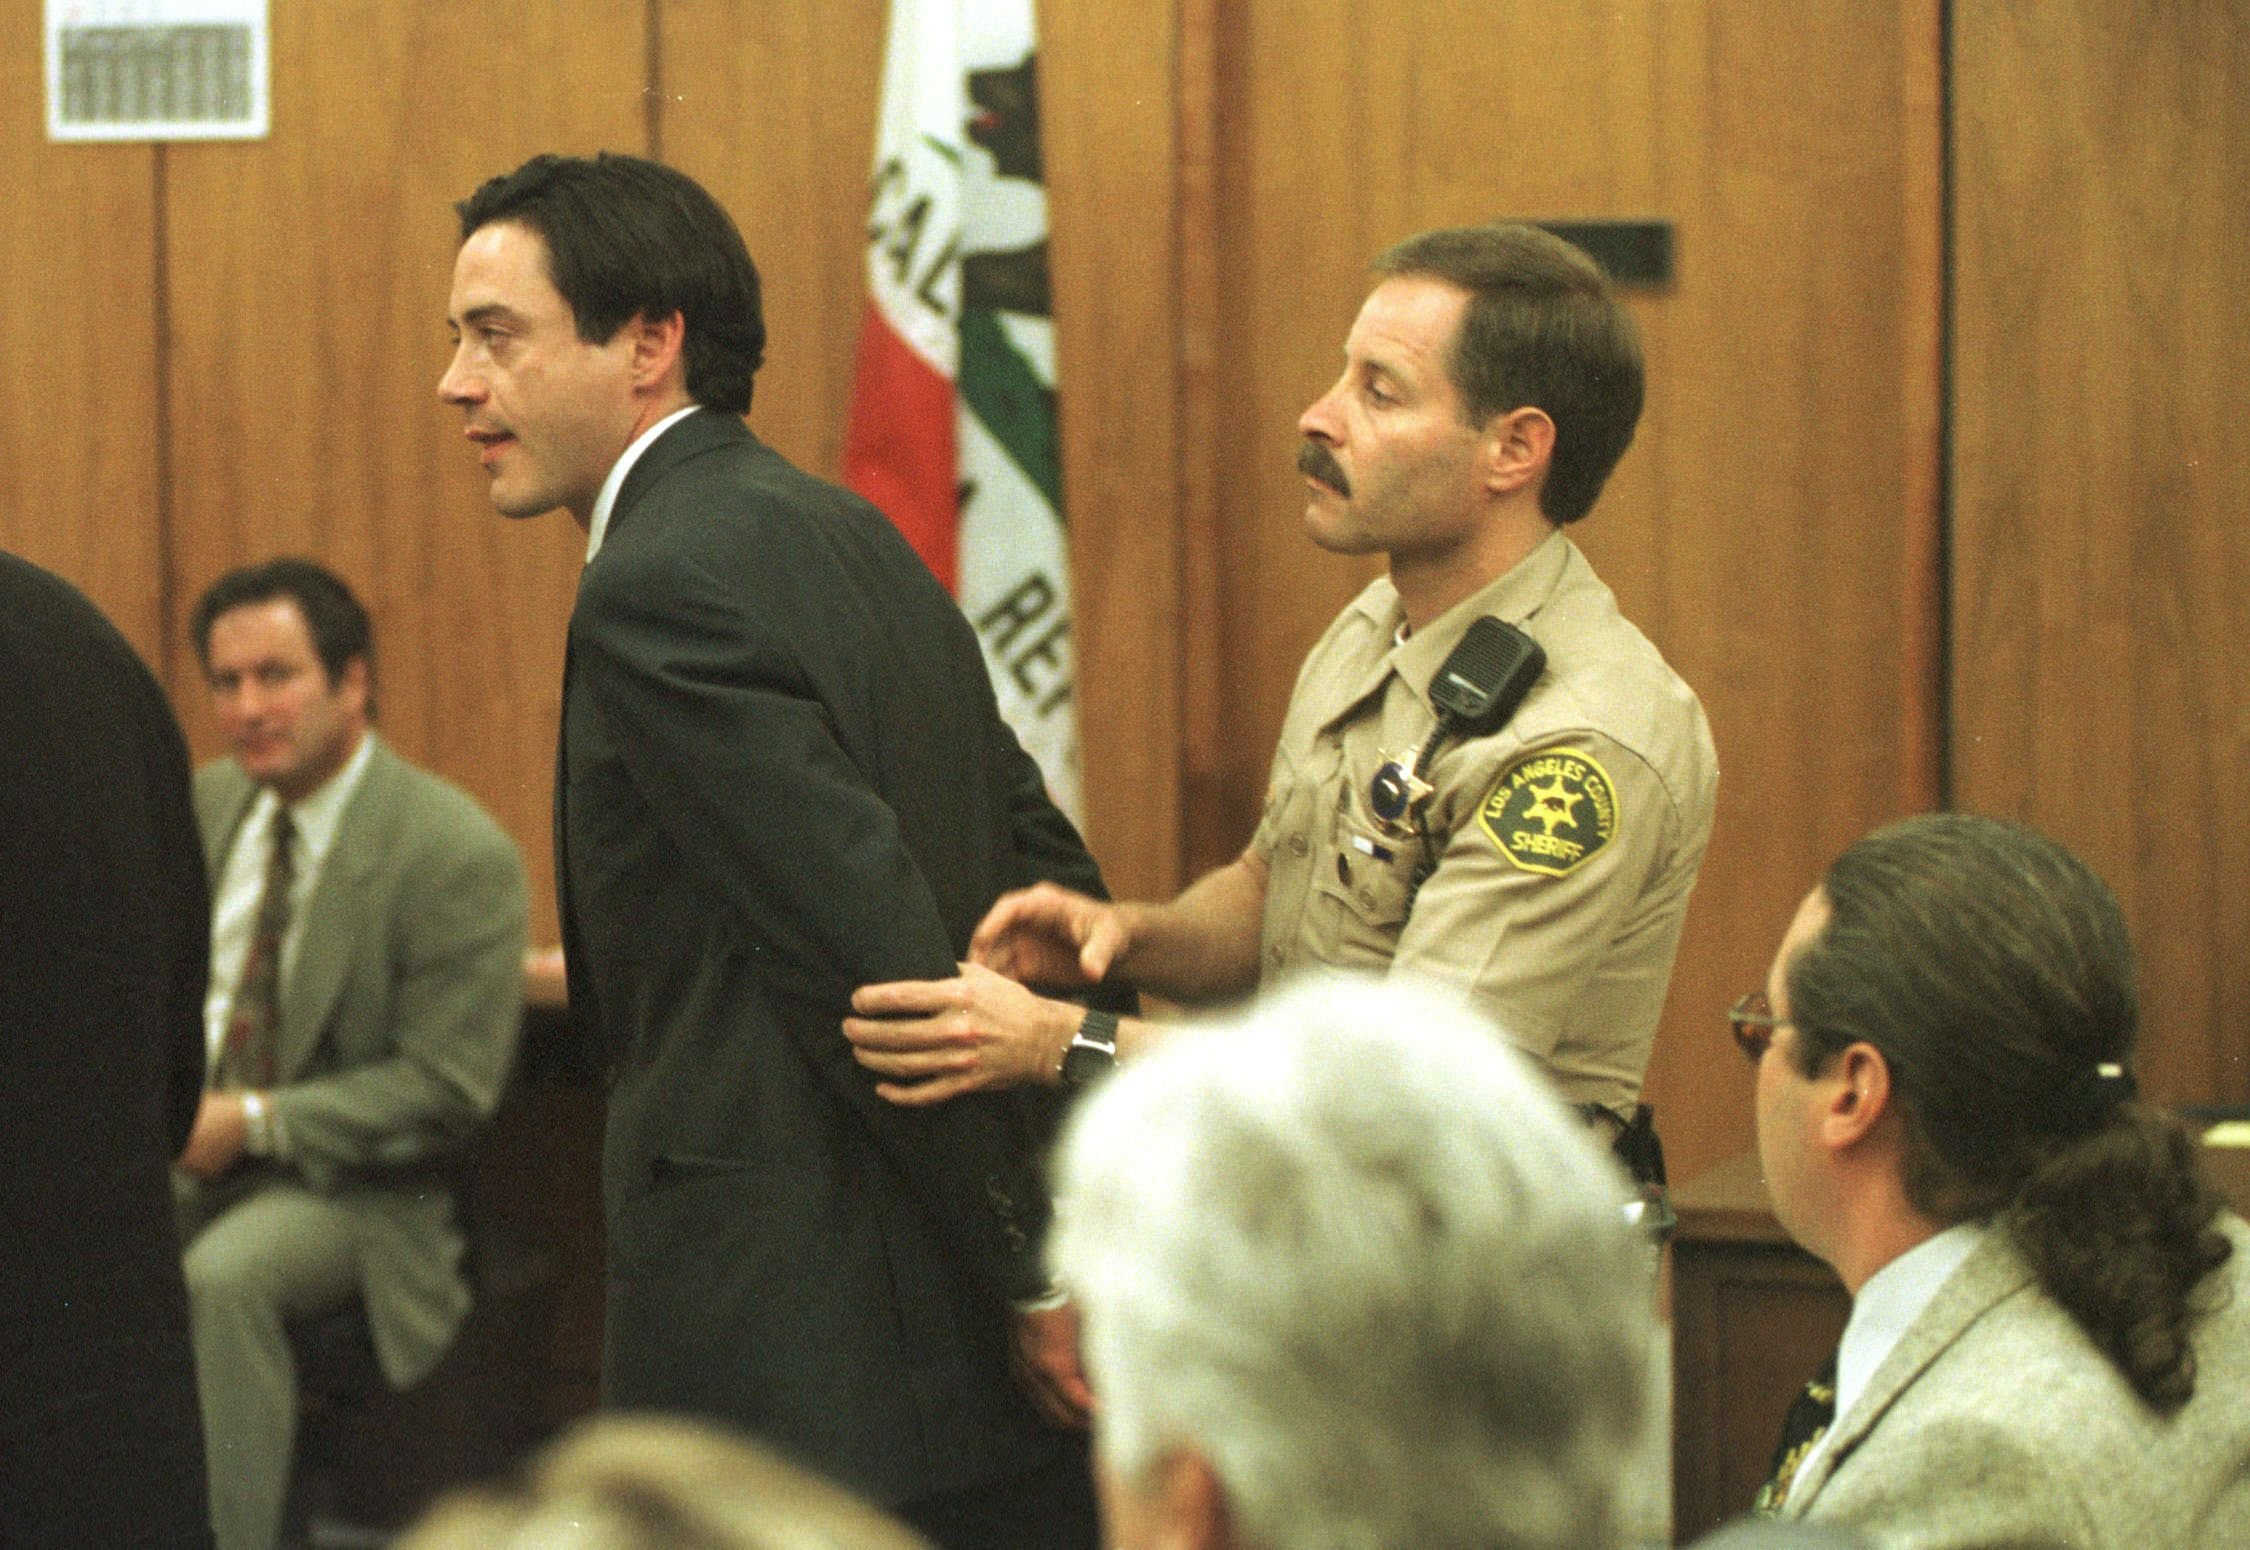 Robert Downey Jr. in custody after being charged with possession of cocaine in1997 in Malibu, CA | Source: Getty Images